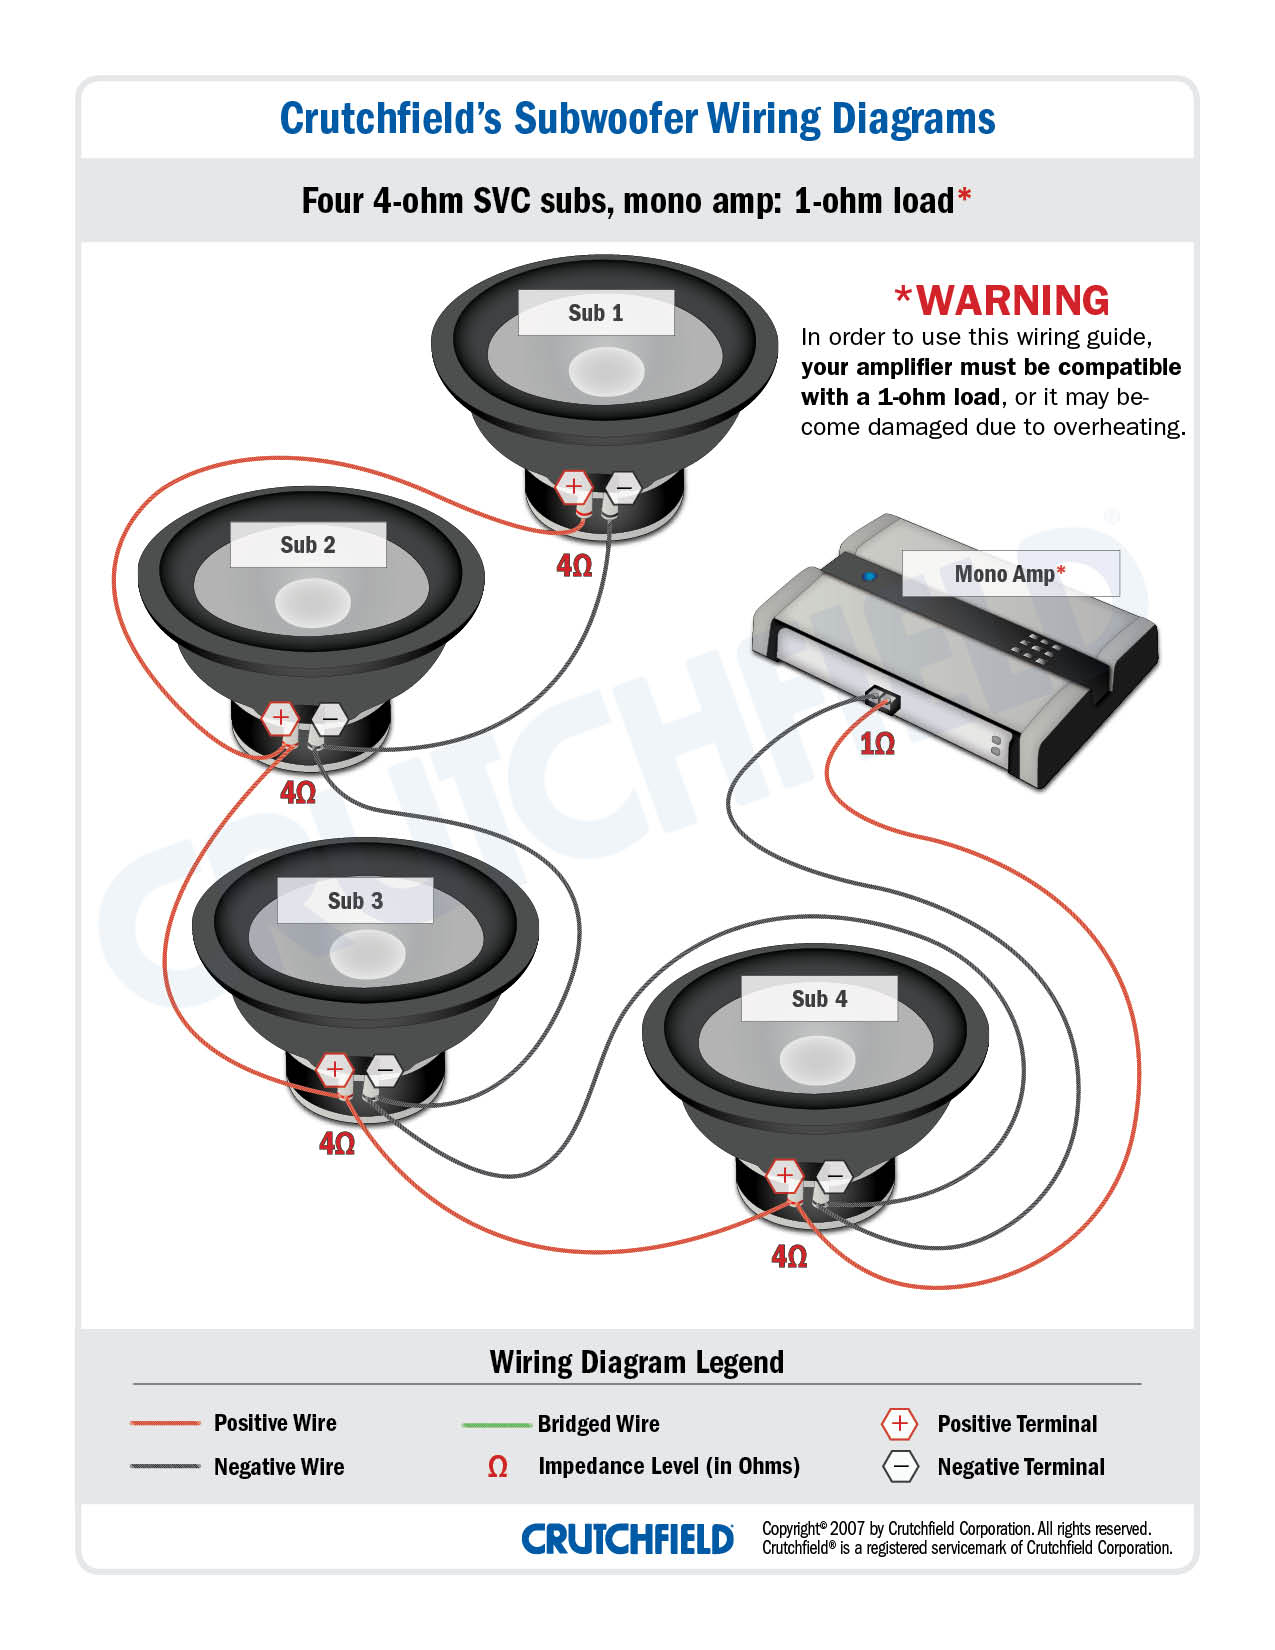 4 SVC 4 ohm mono low imp wiring subwoofers what's all this about ohms? crutchfield wiring diagrams at edmiracle.co